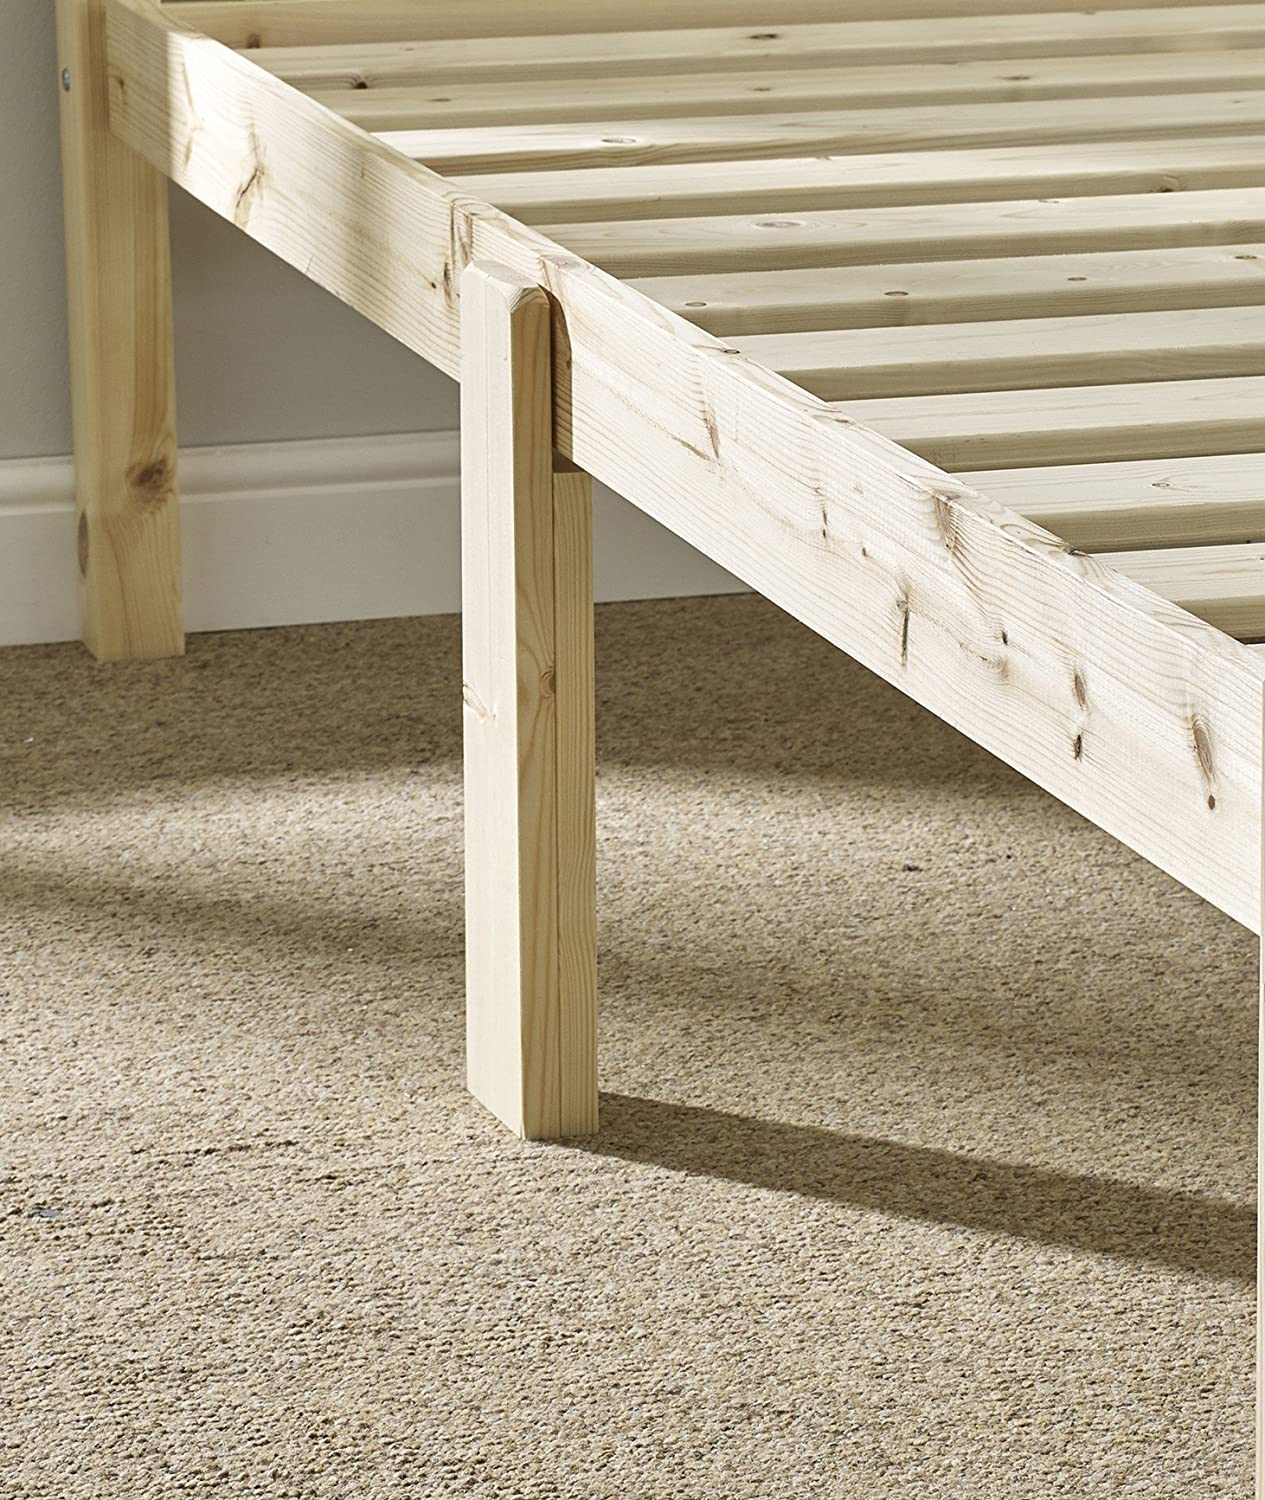 Double Pine Bed 4ft 6 HEAVY DUTY Wooden Frame with extra wide base slats and centre rail - VERY STRONG Strictlybedsandbunks